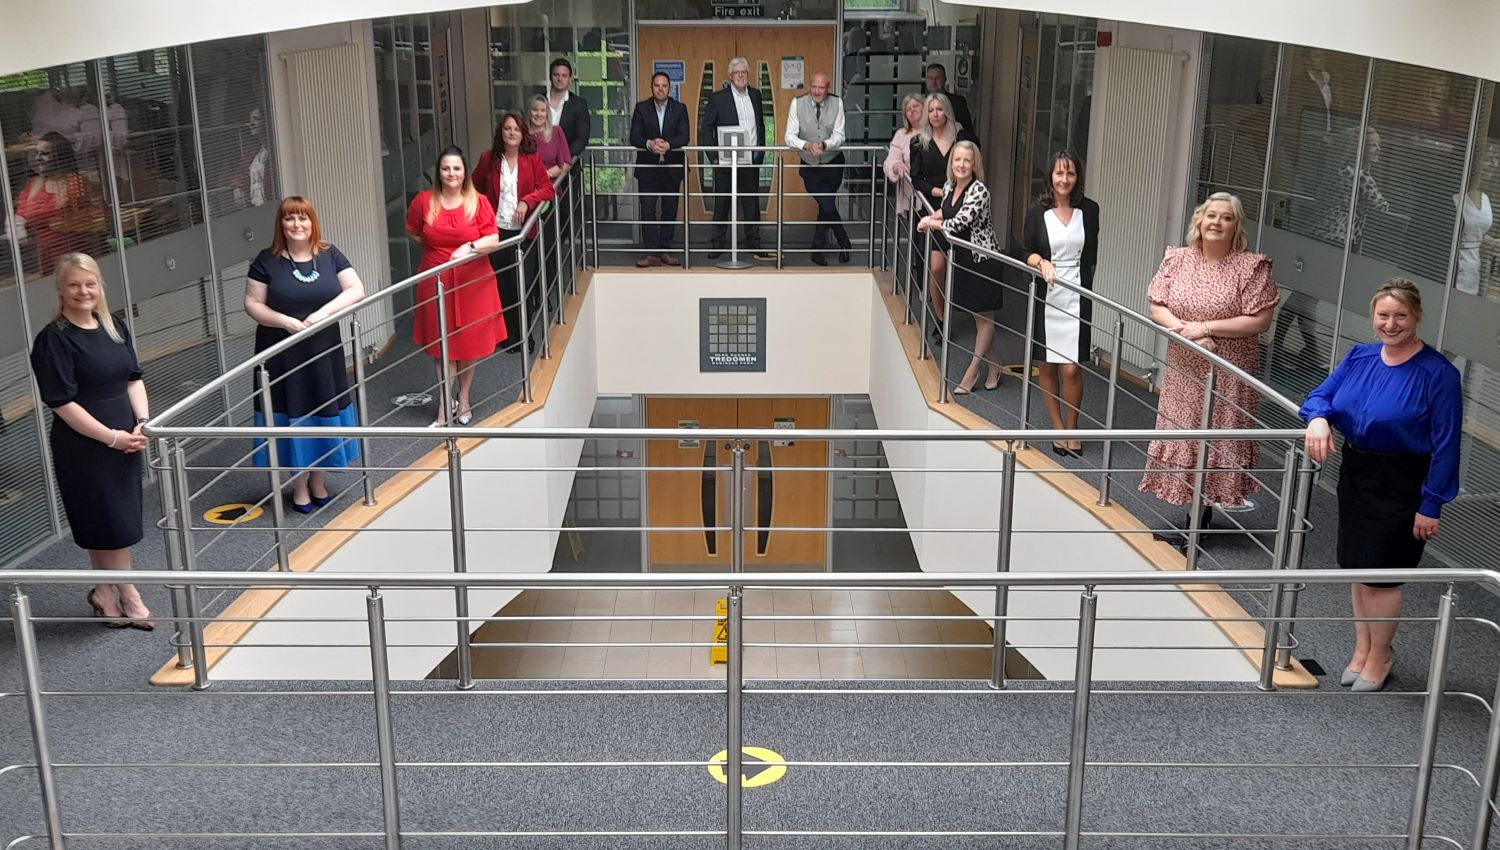 Educ8 one of 46 businesses recognised by HRH The Princess Royal for excellence in training and development in 2021